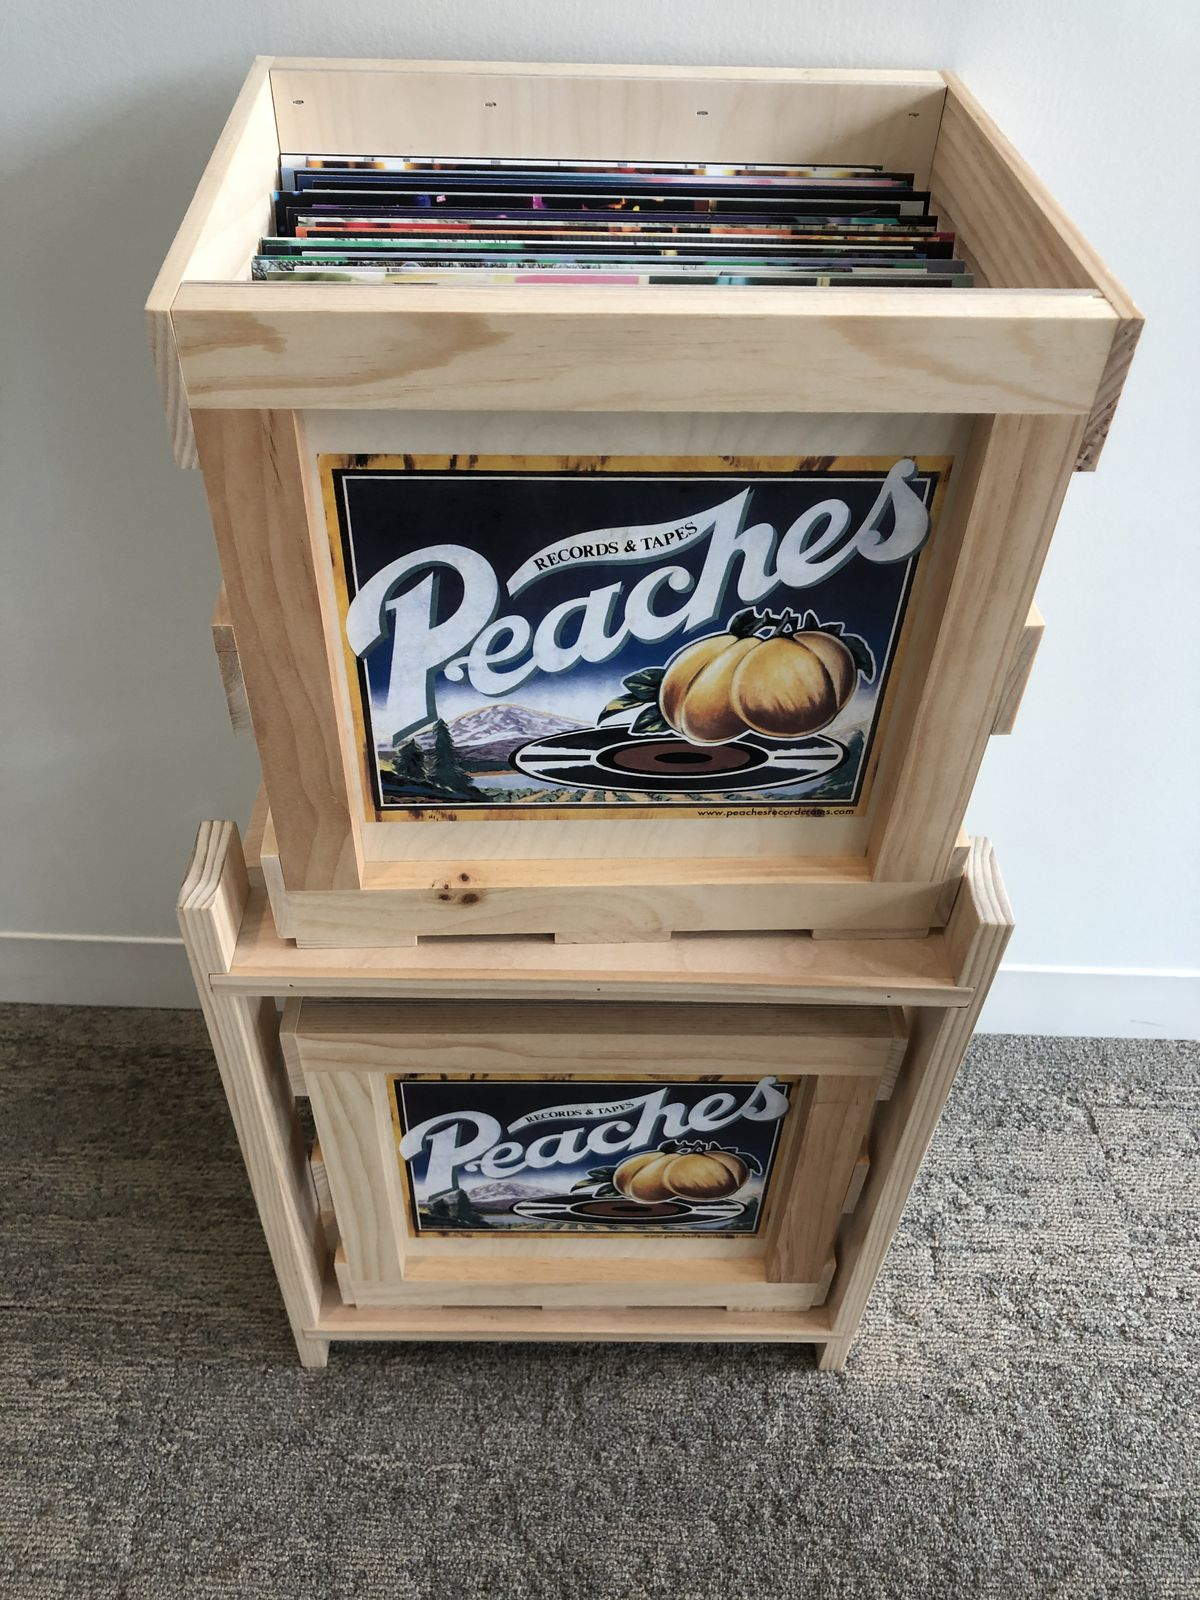 Two wooden crates with Peaches Records and Tapes labels containing vinyl records with white wall in background